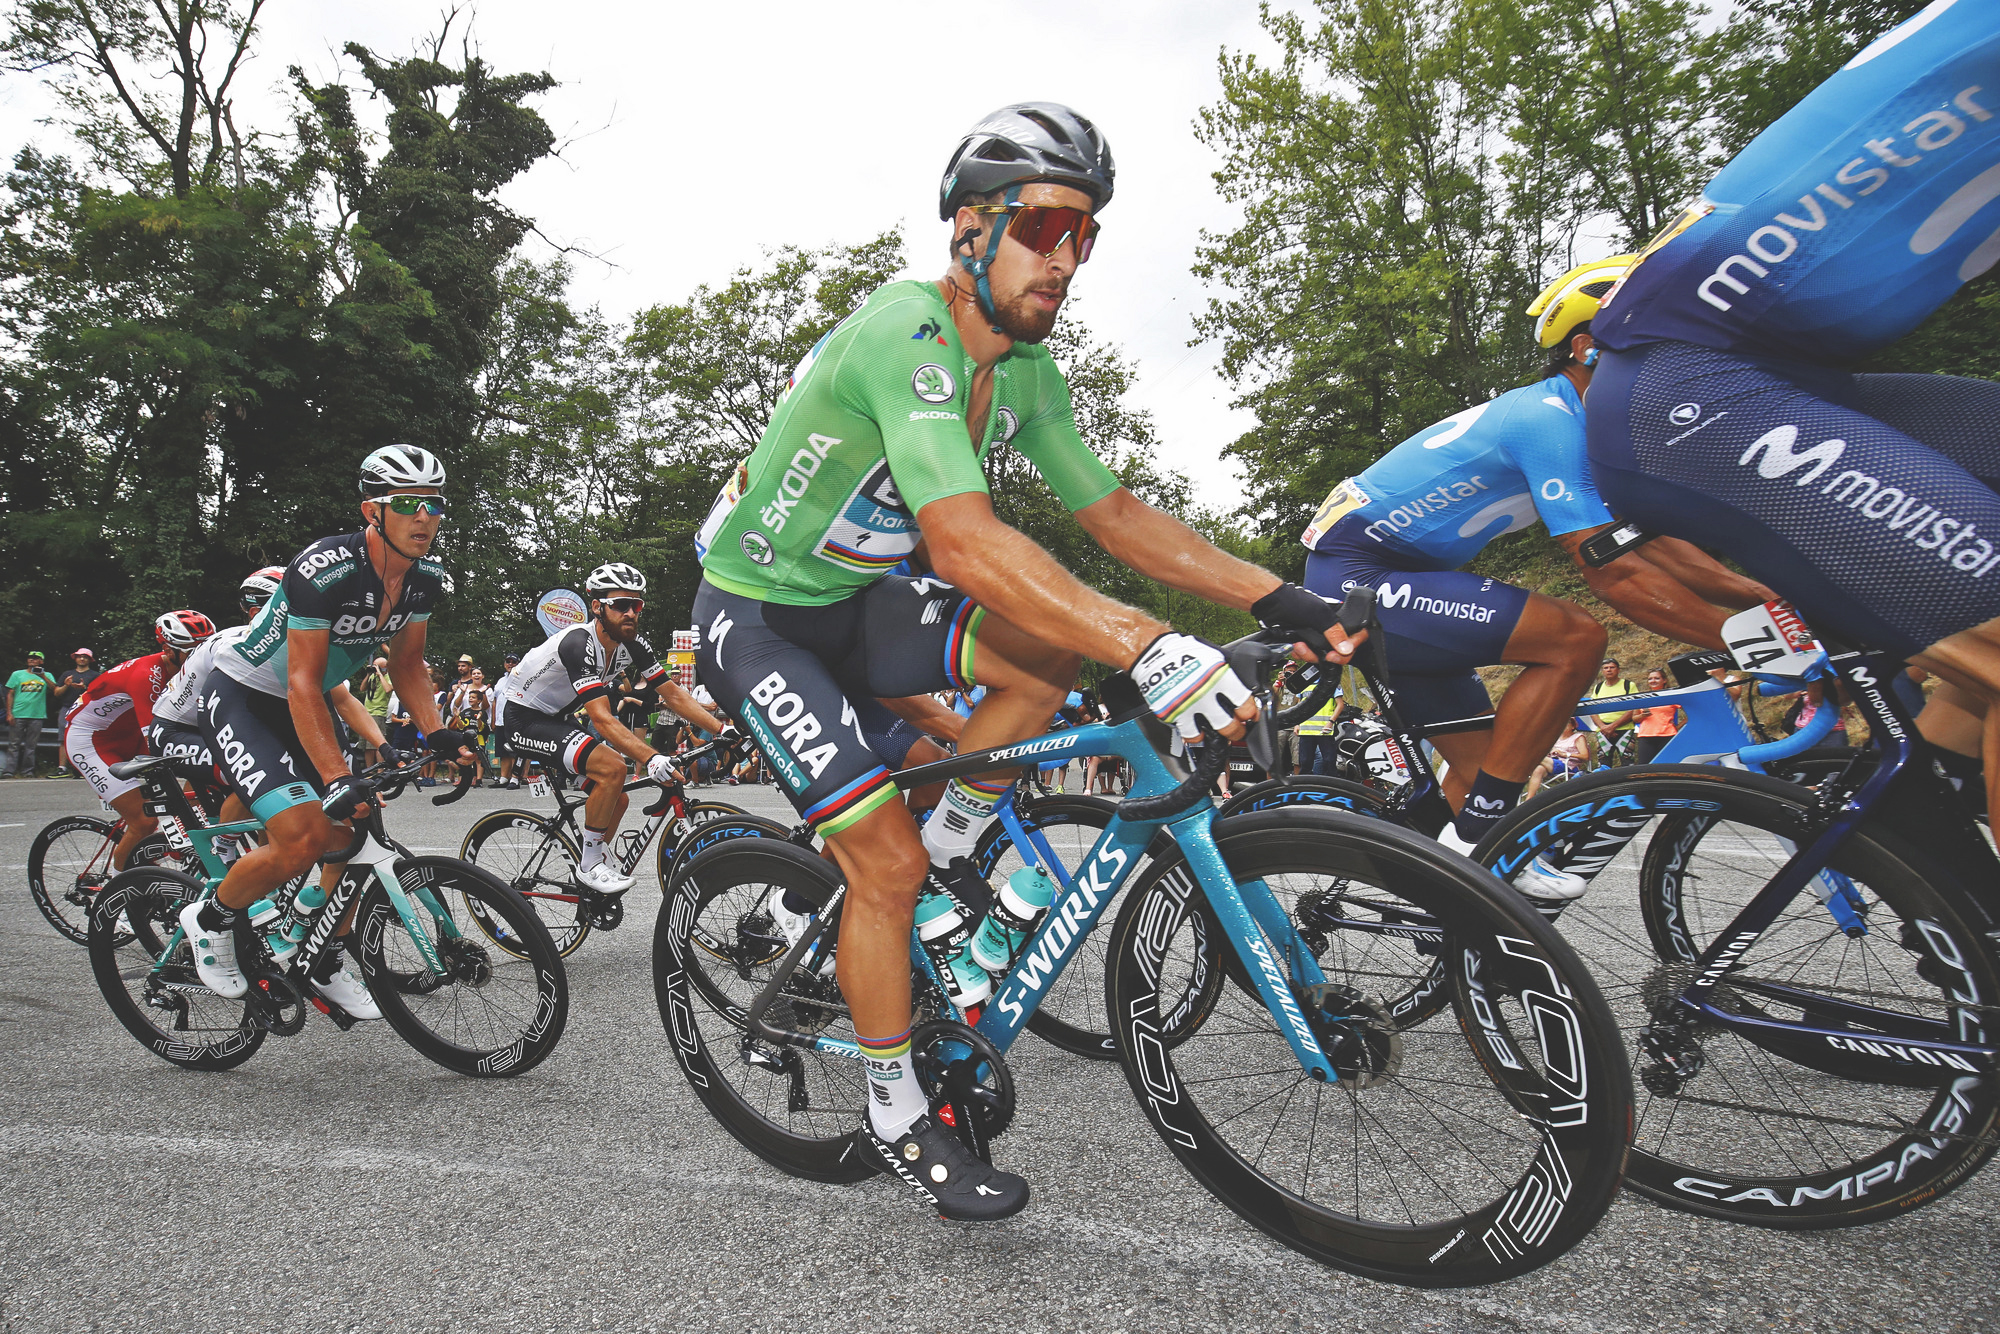 INSCYD methodology has been a part of Peters training since his times at Team Cannondale Pro Cycling.